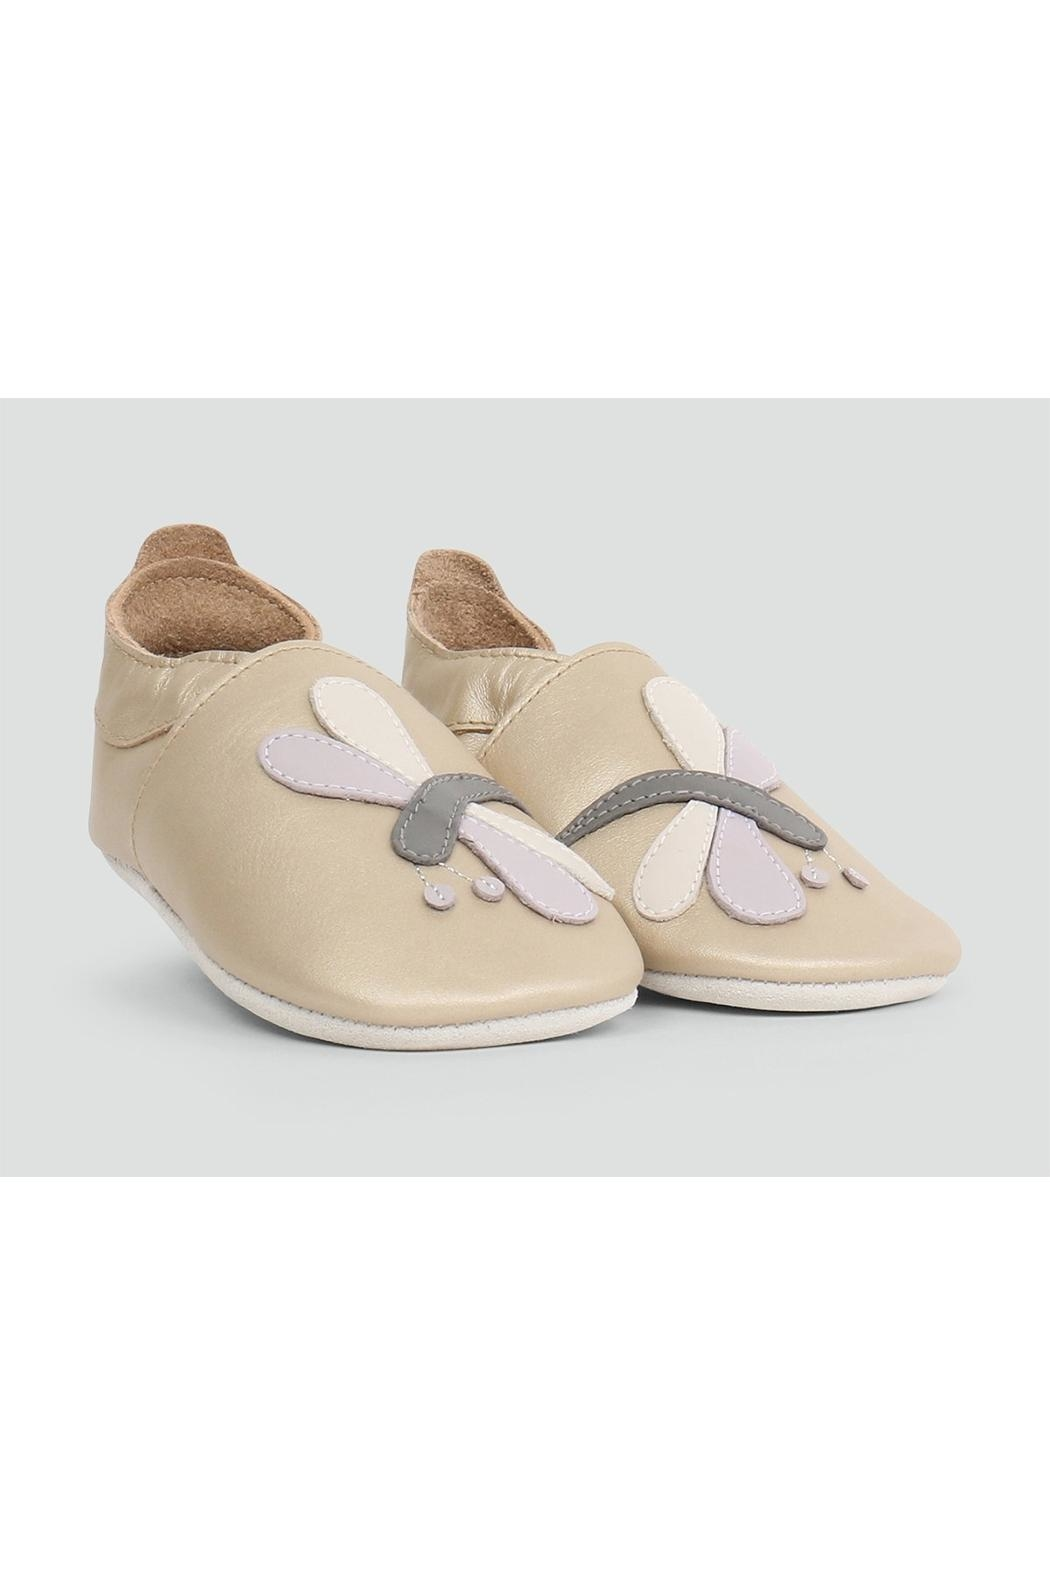 Bobux Gold-Dragonfly Soft-Sole Slippers - Main Image